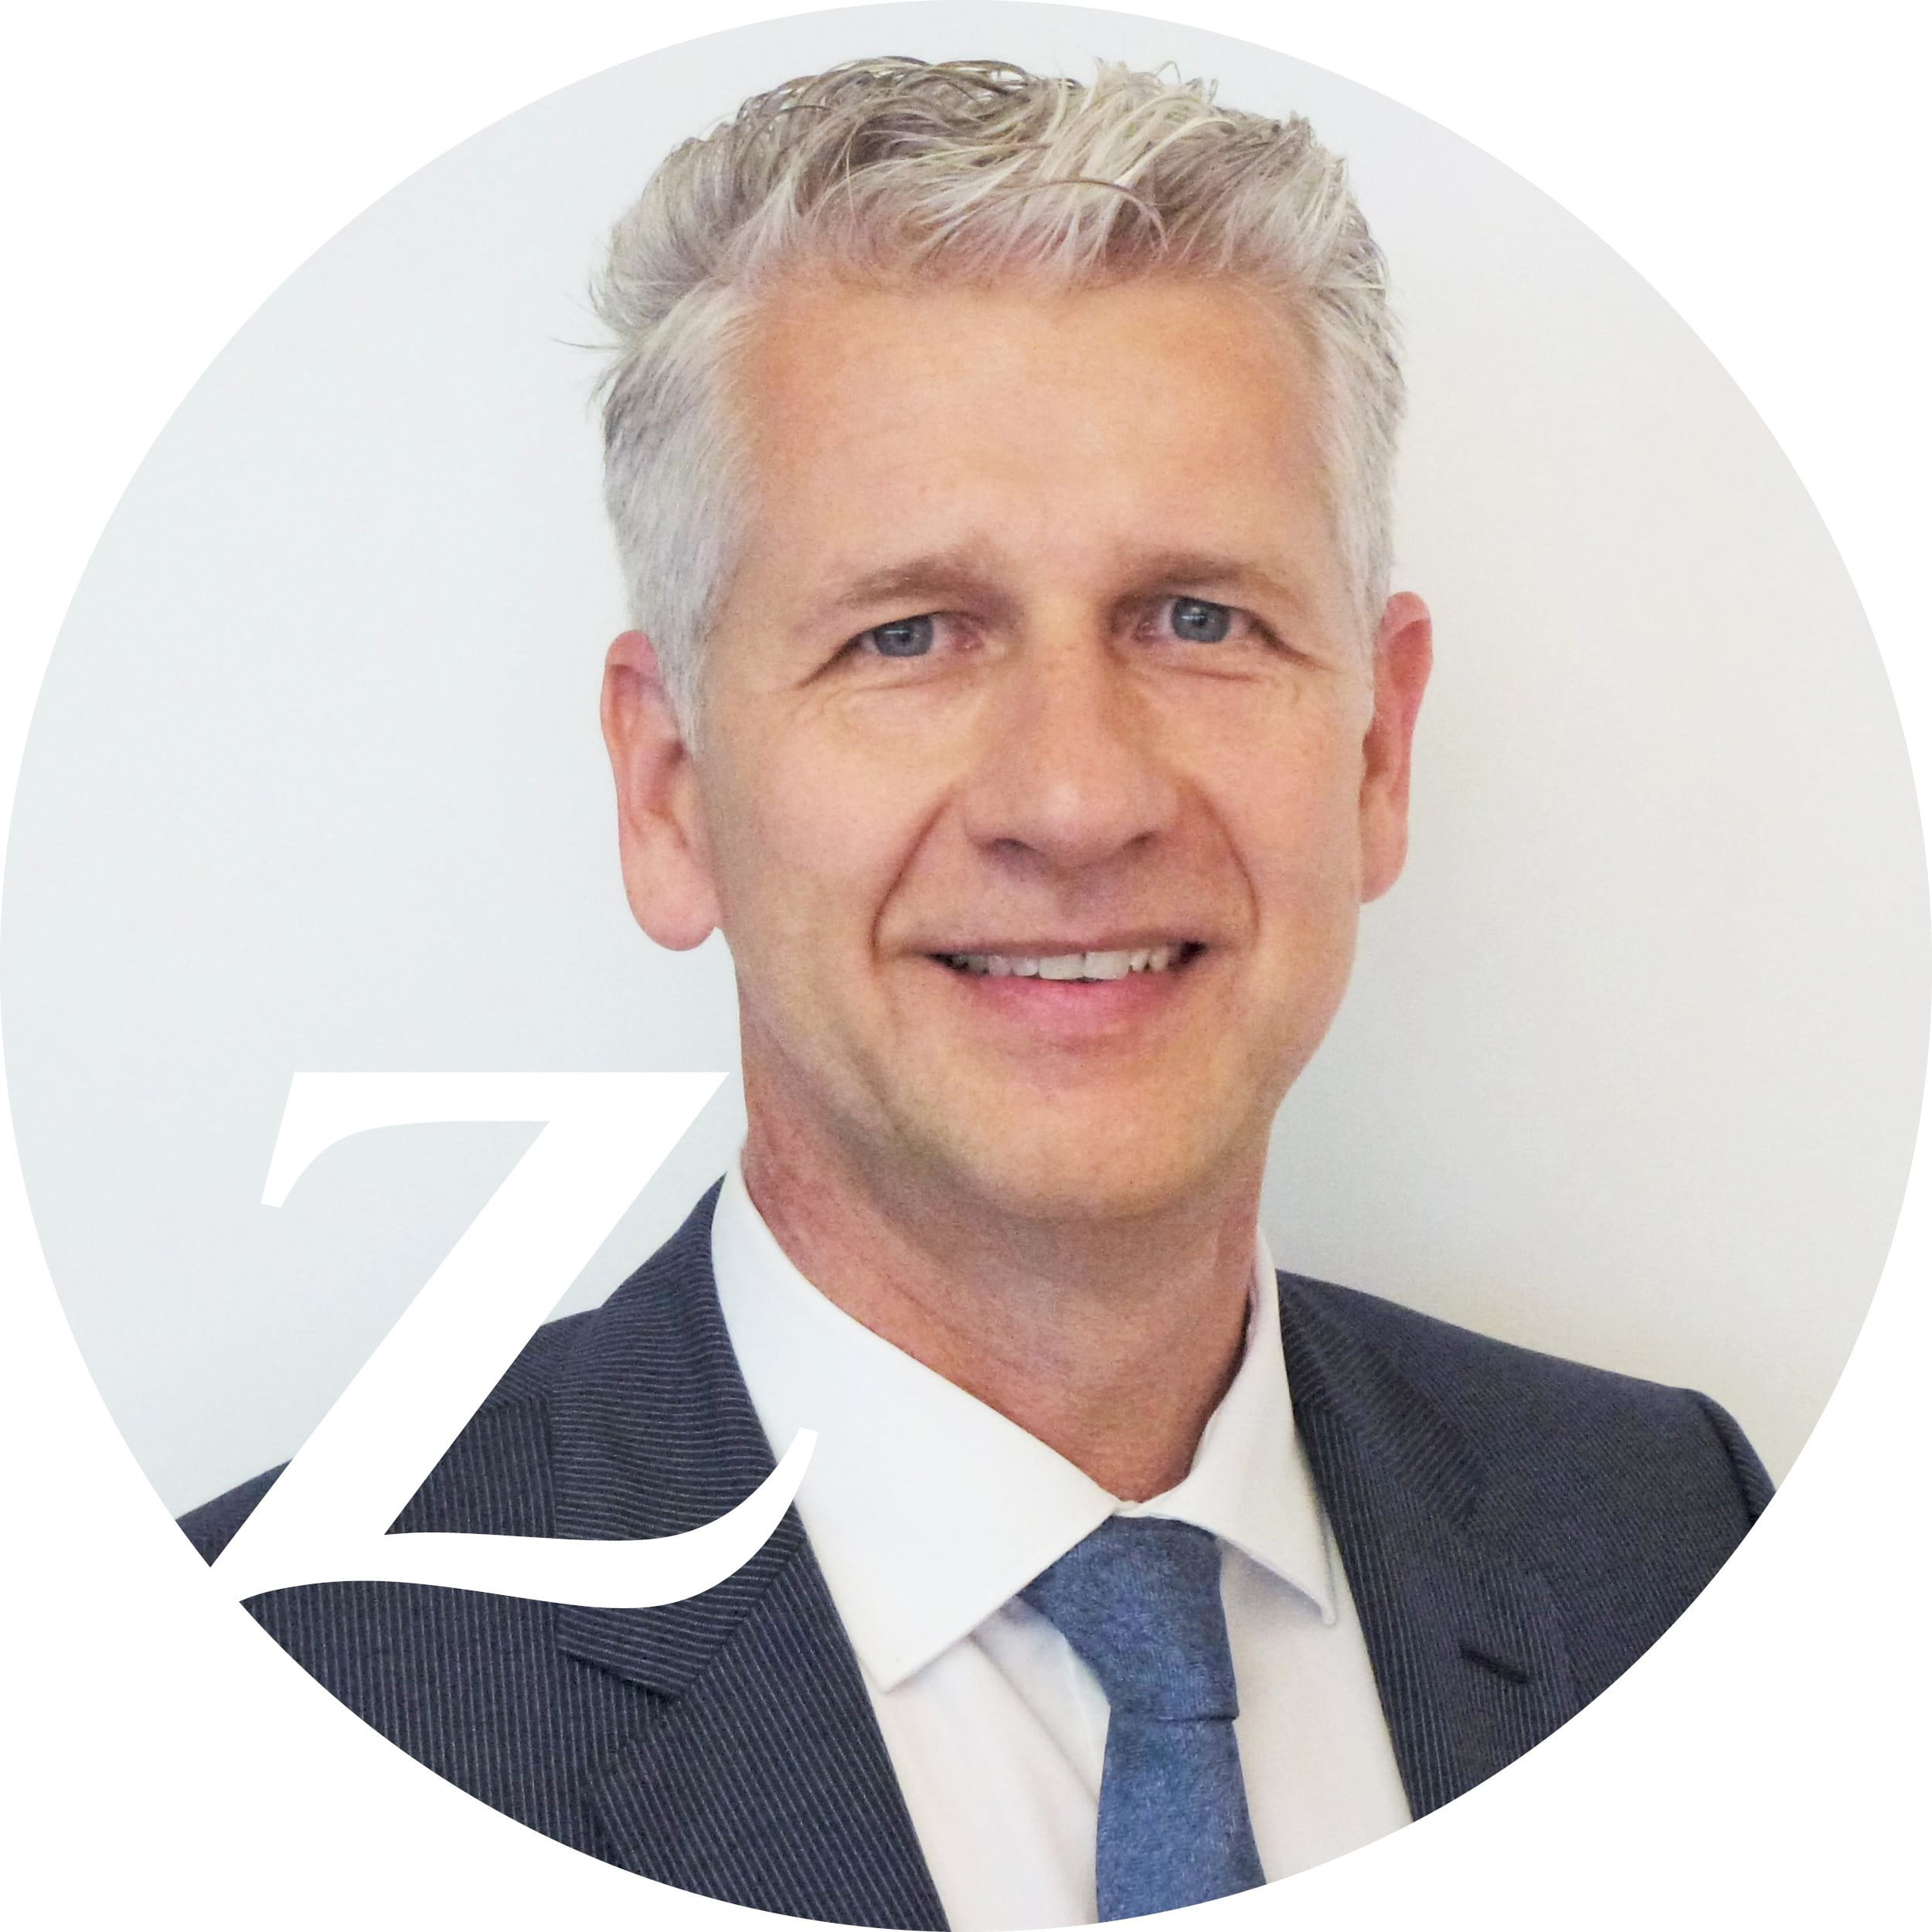 Andreas Fischer, Chief Investment Officer